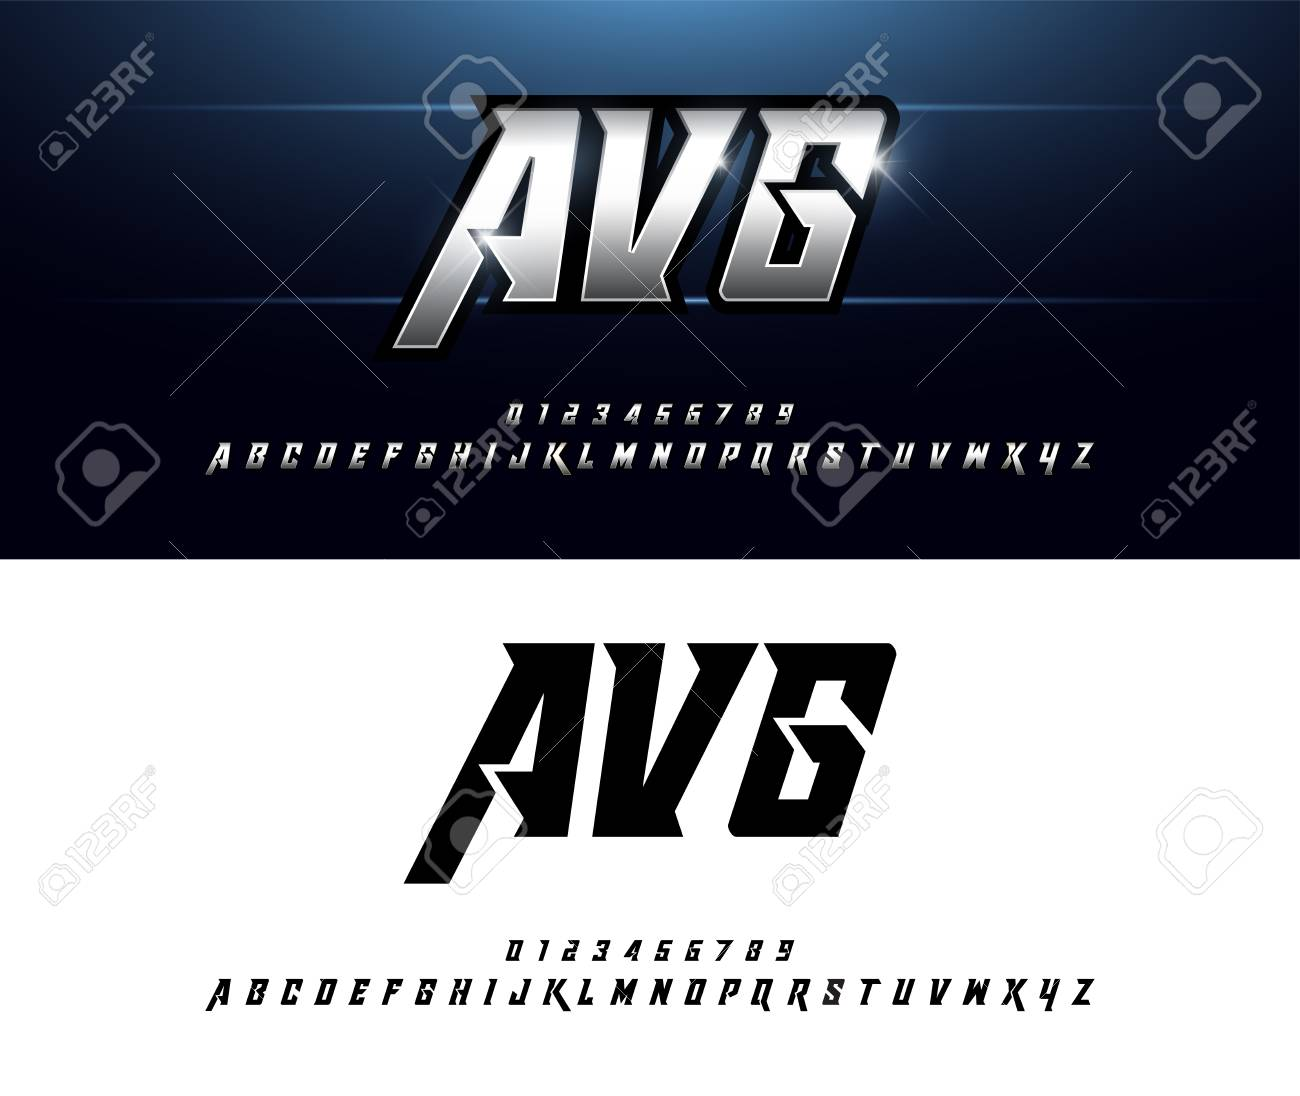 Alphabet silver metallic and effect designs. Elegant silver letters typography italic font. technology, sport, movie, and sci-fi concept. vector illustrator - 109158781